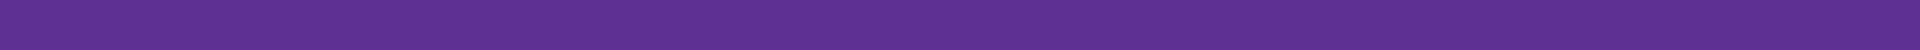 purple-bar